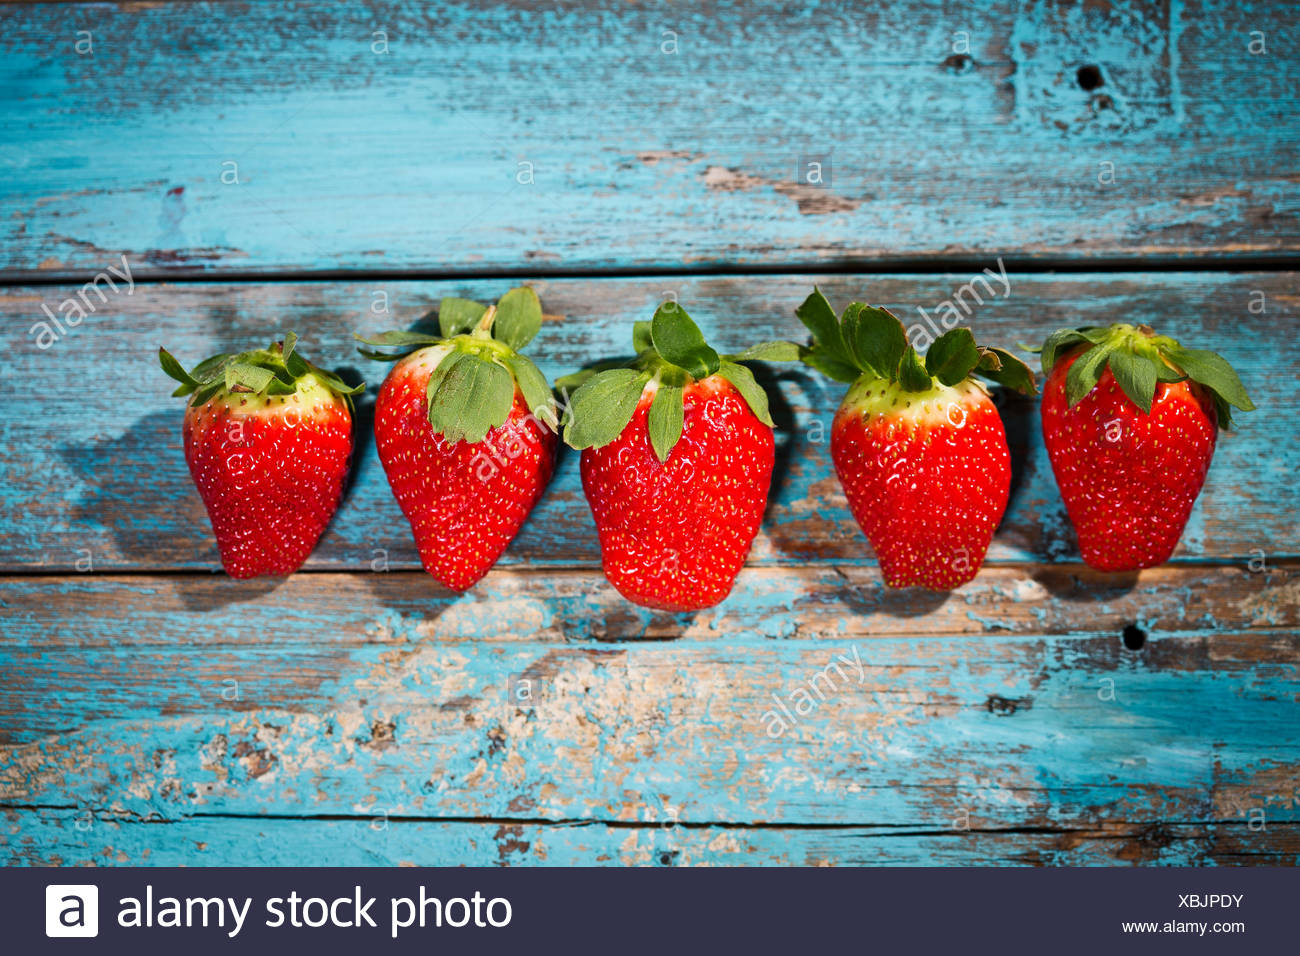 Row of five strawberries on blue wood - Stock Image